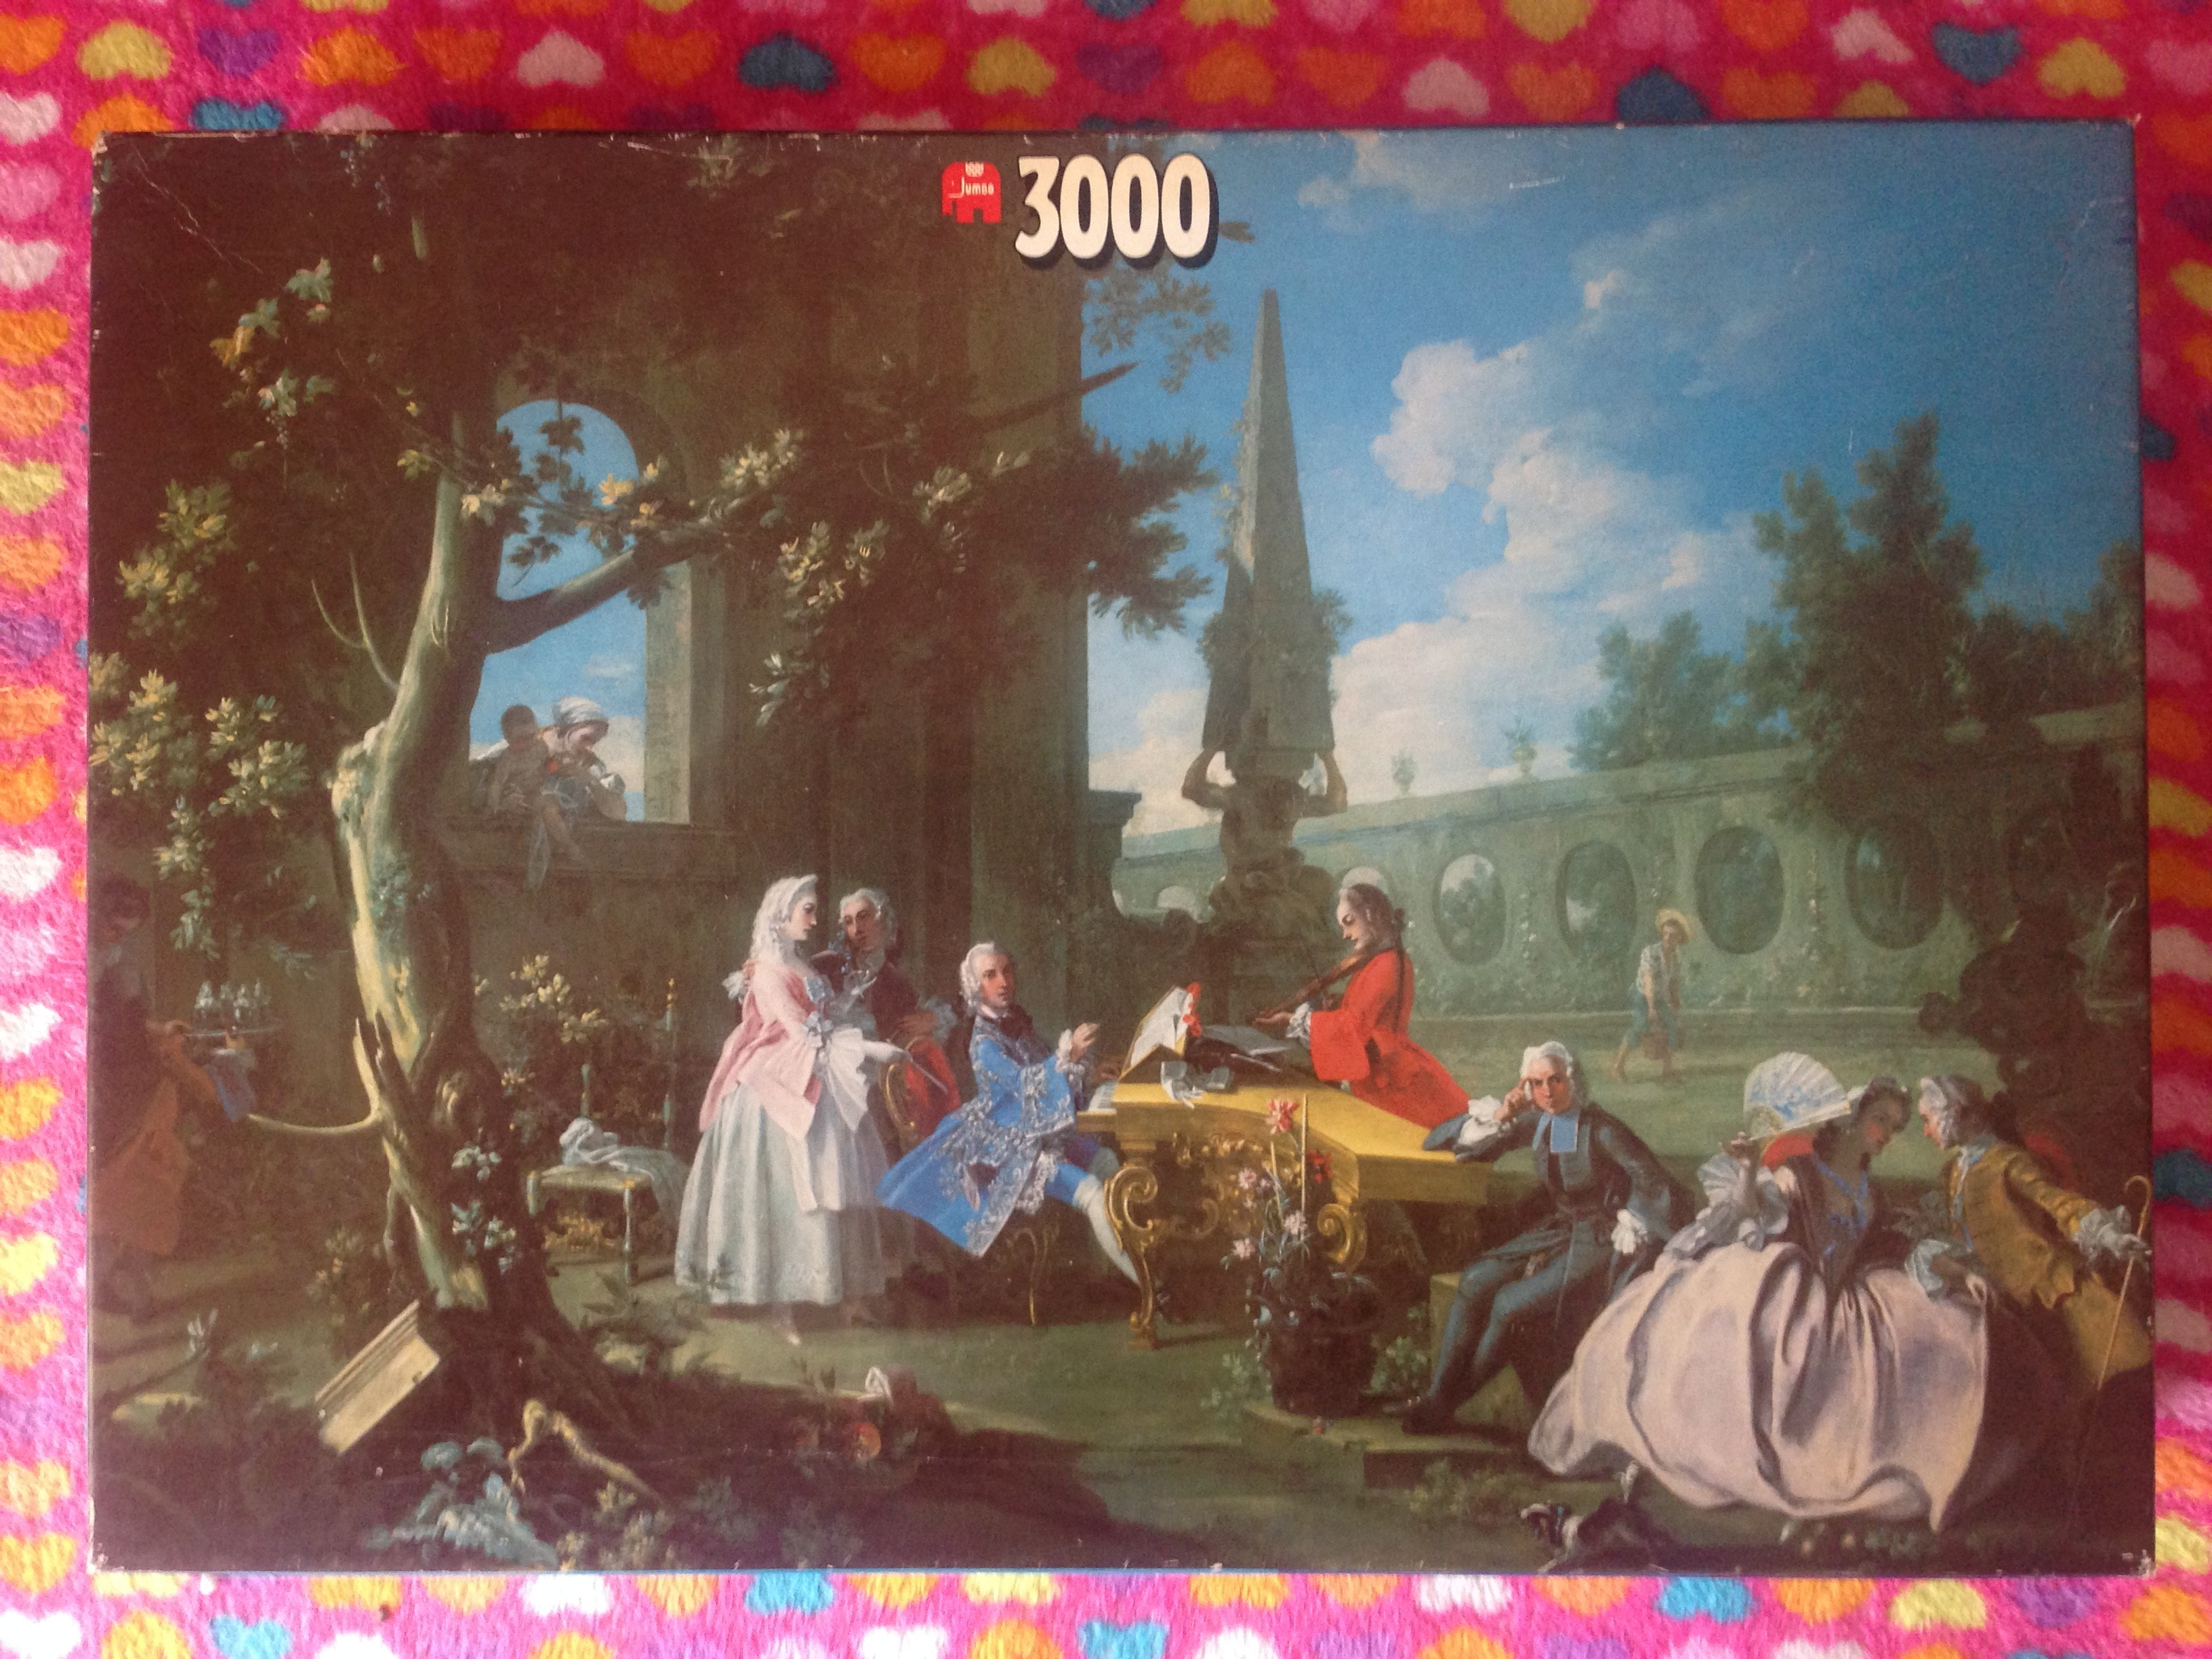 Image of the Puzzle 3000, Jumbo, Relaxation in the Garden, Complete, Picture of the Box